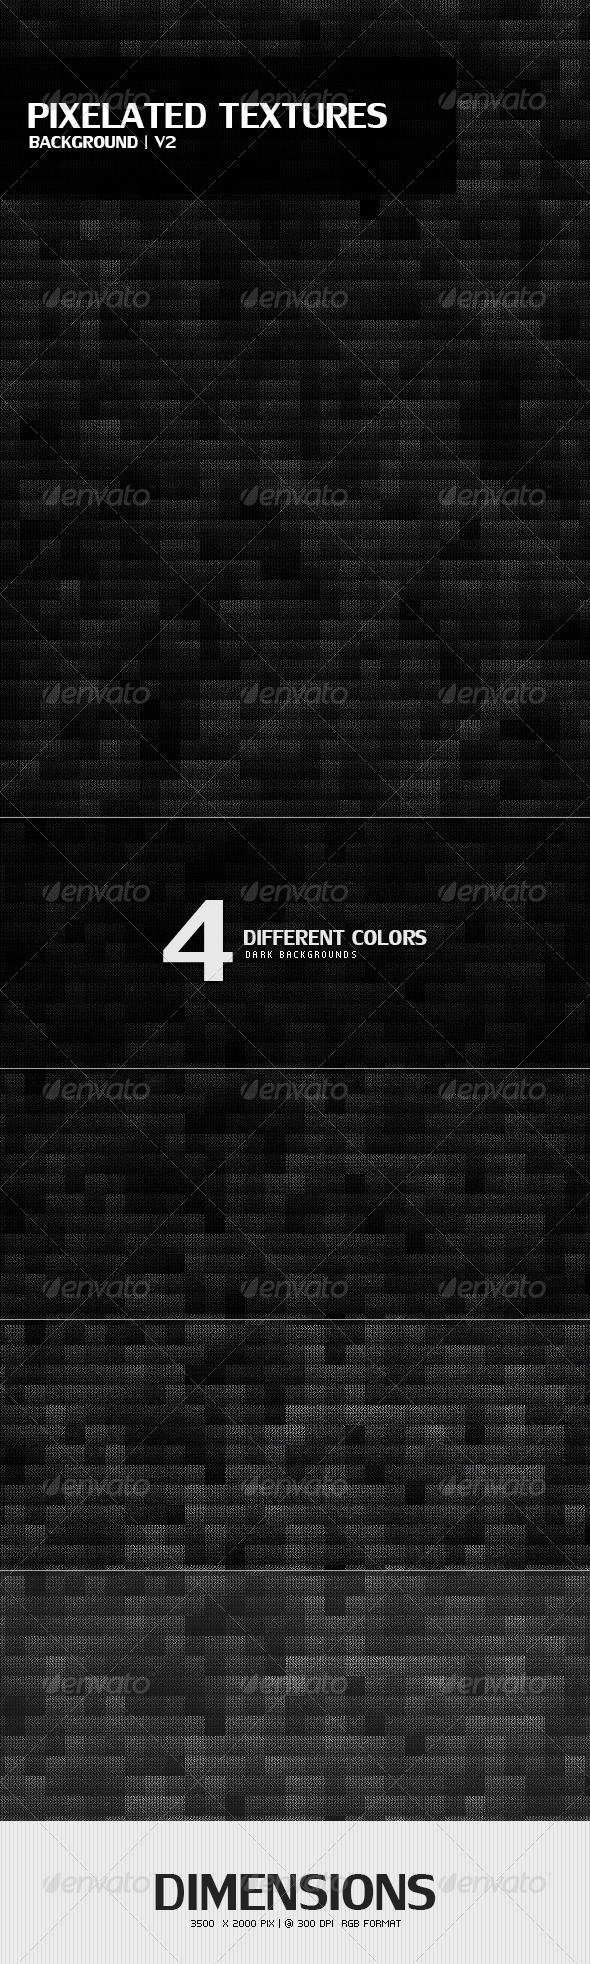 Pixelated Textures Background v2 - Abstract Backgrounds